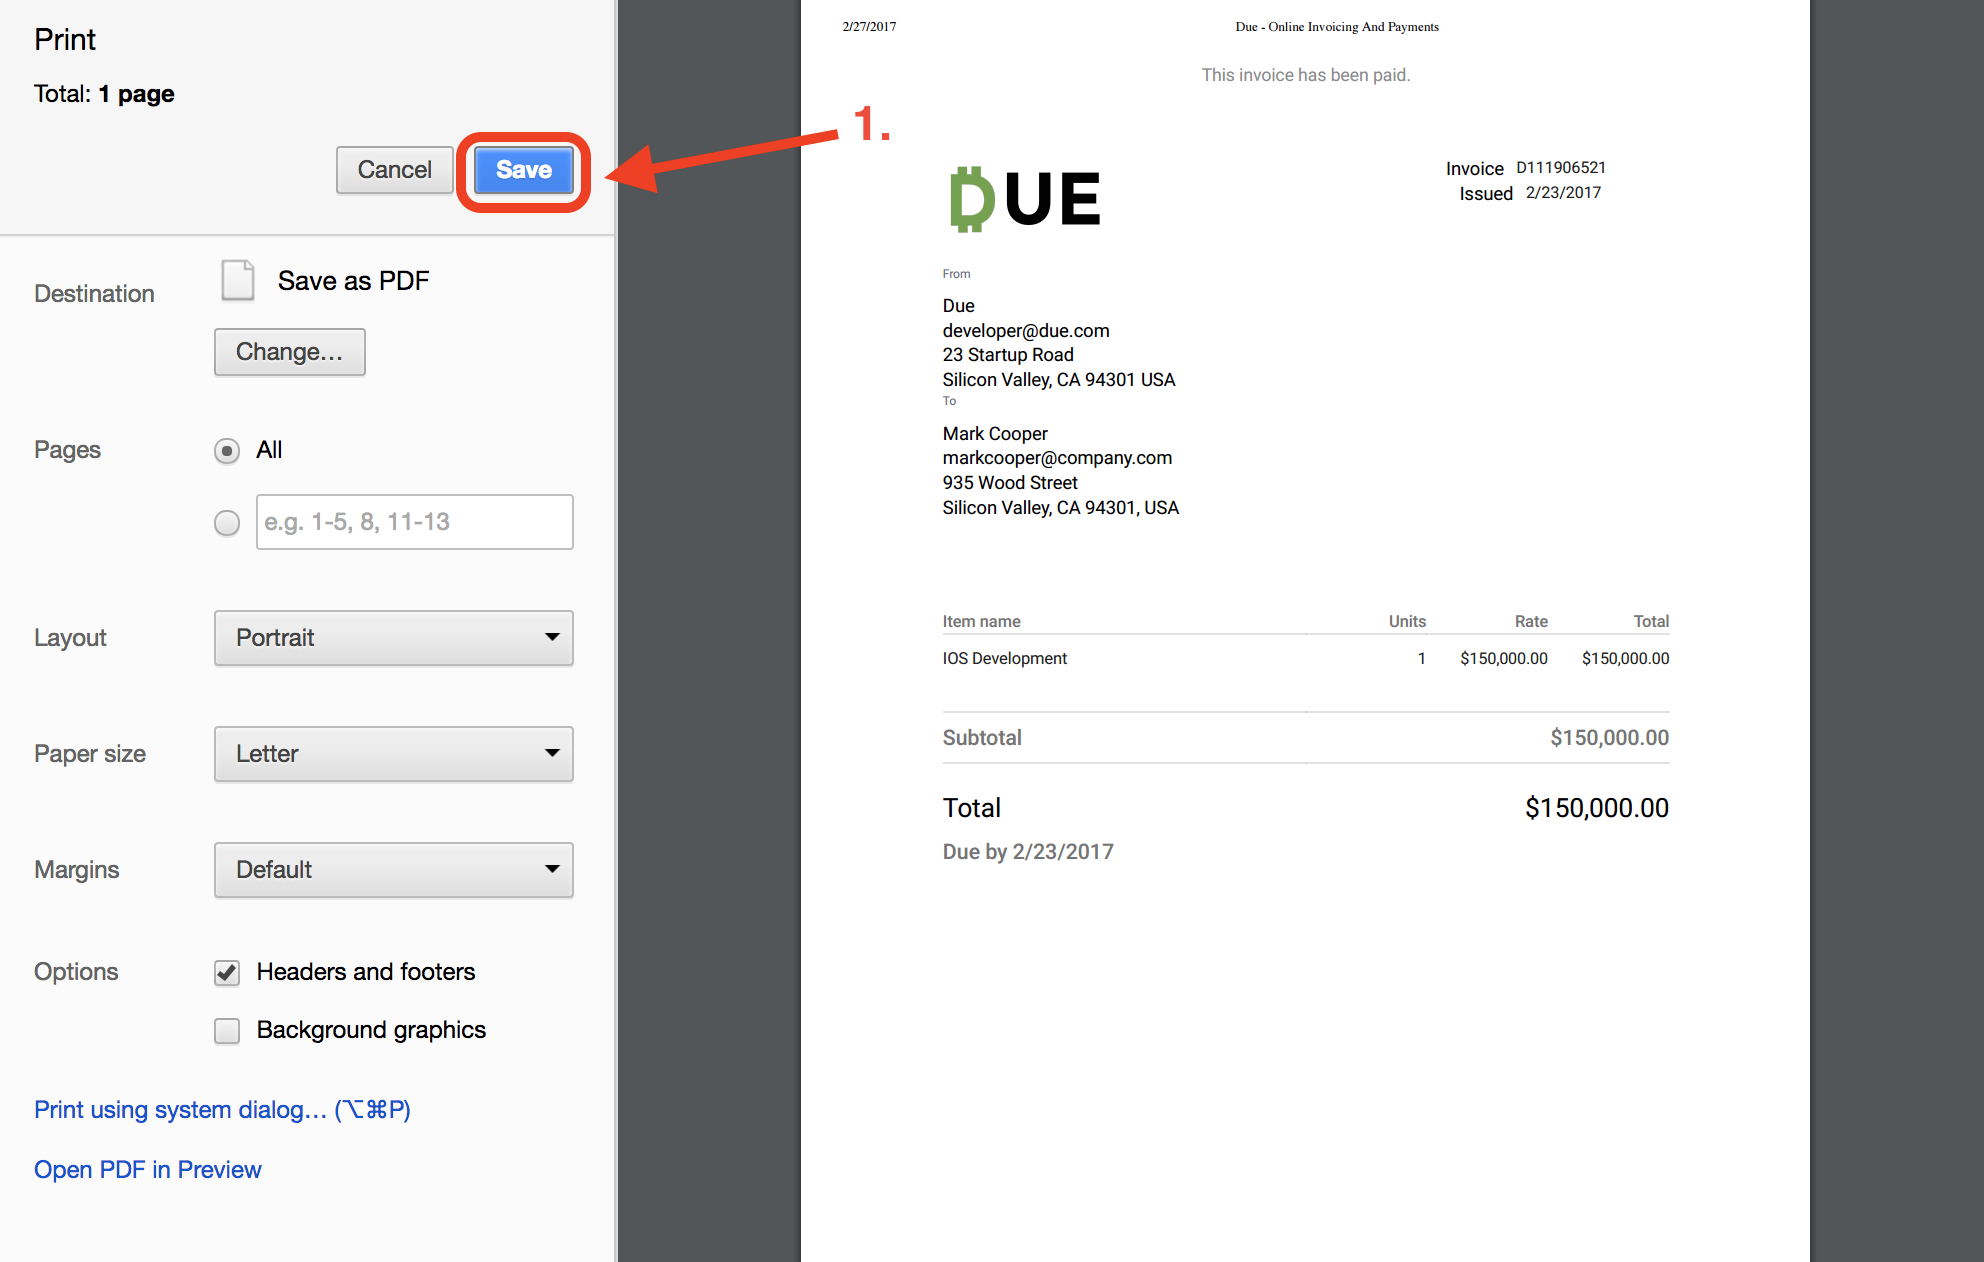 Invoice Pdf | Due Invoicing How To Save An Invoice Pdf Due